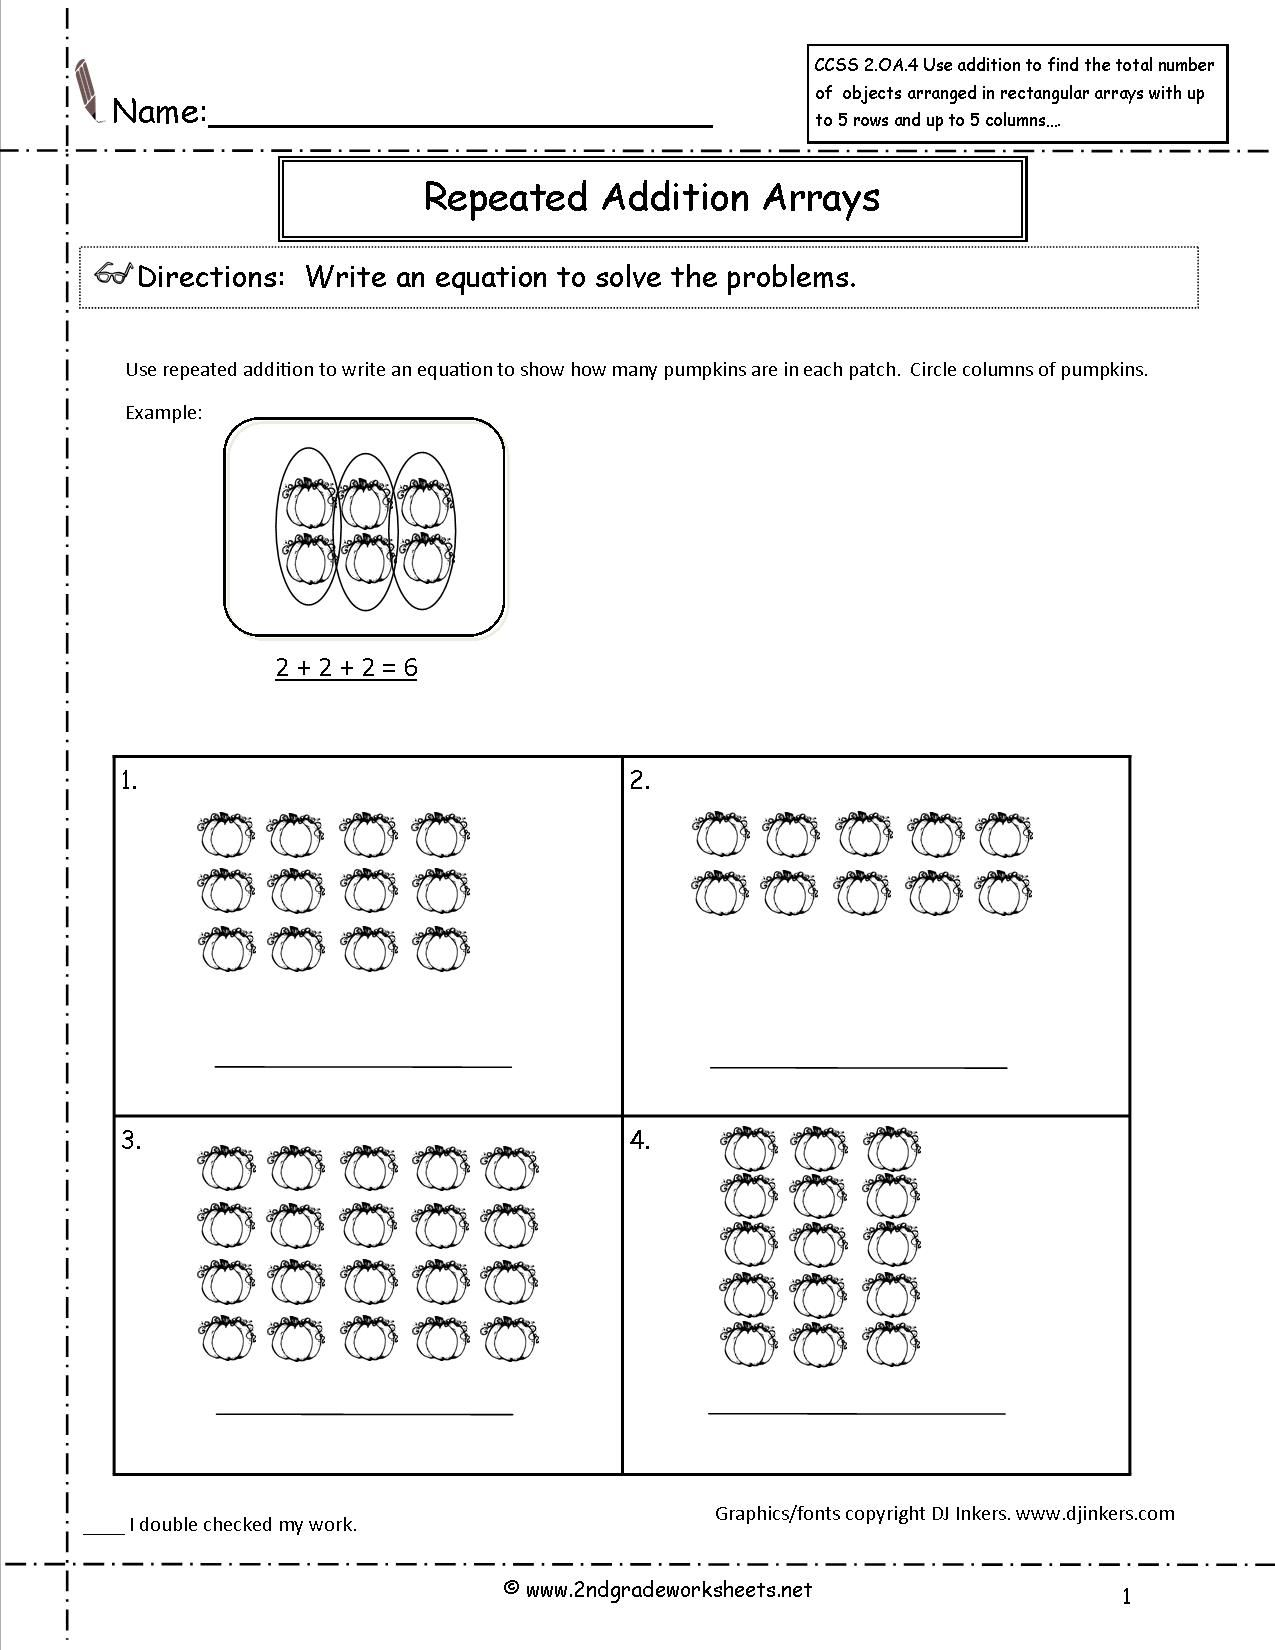 pumpkins repeated addition worksheet   Repeated addition worksheets [ 1650 x 1275 Pixel ]